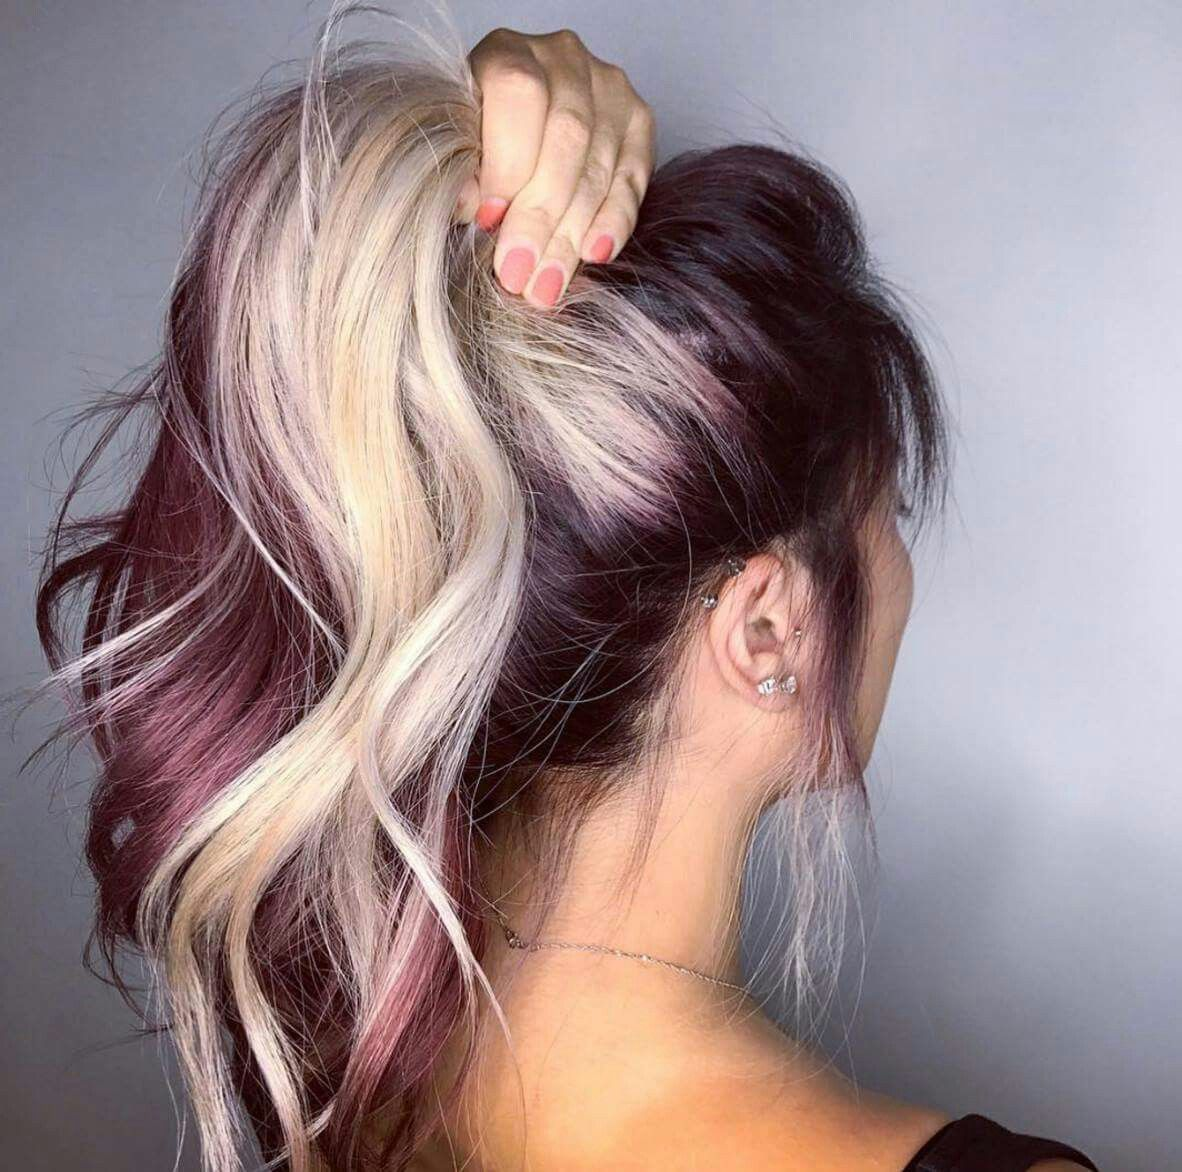 Twotone hair pinterest hair coloring hair style and makeup